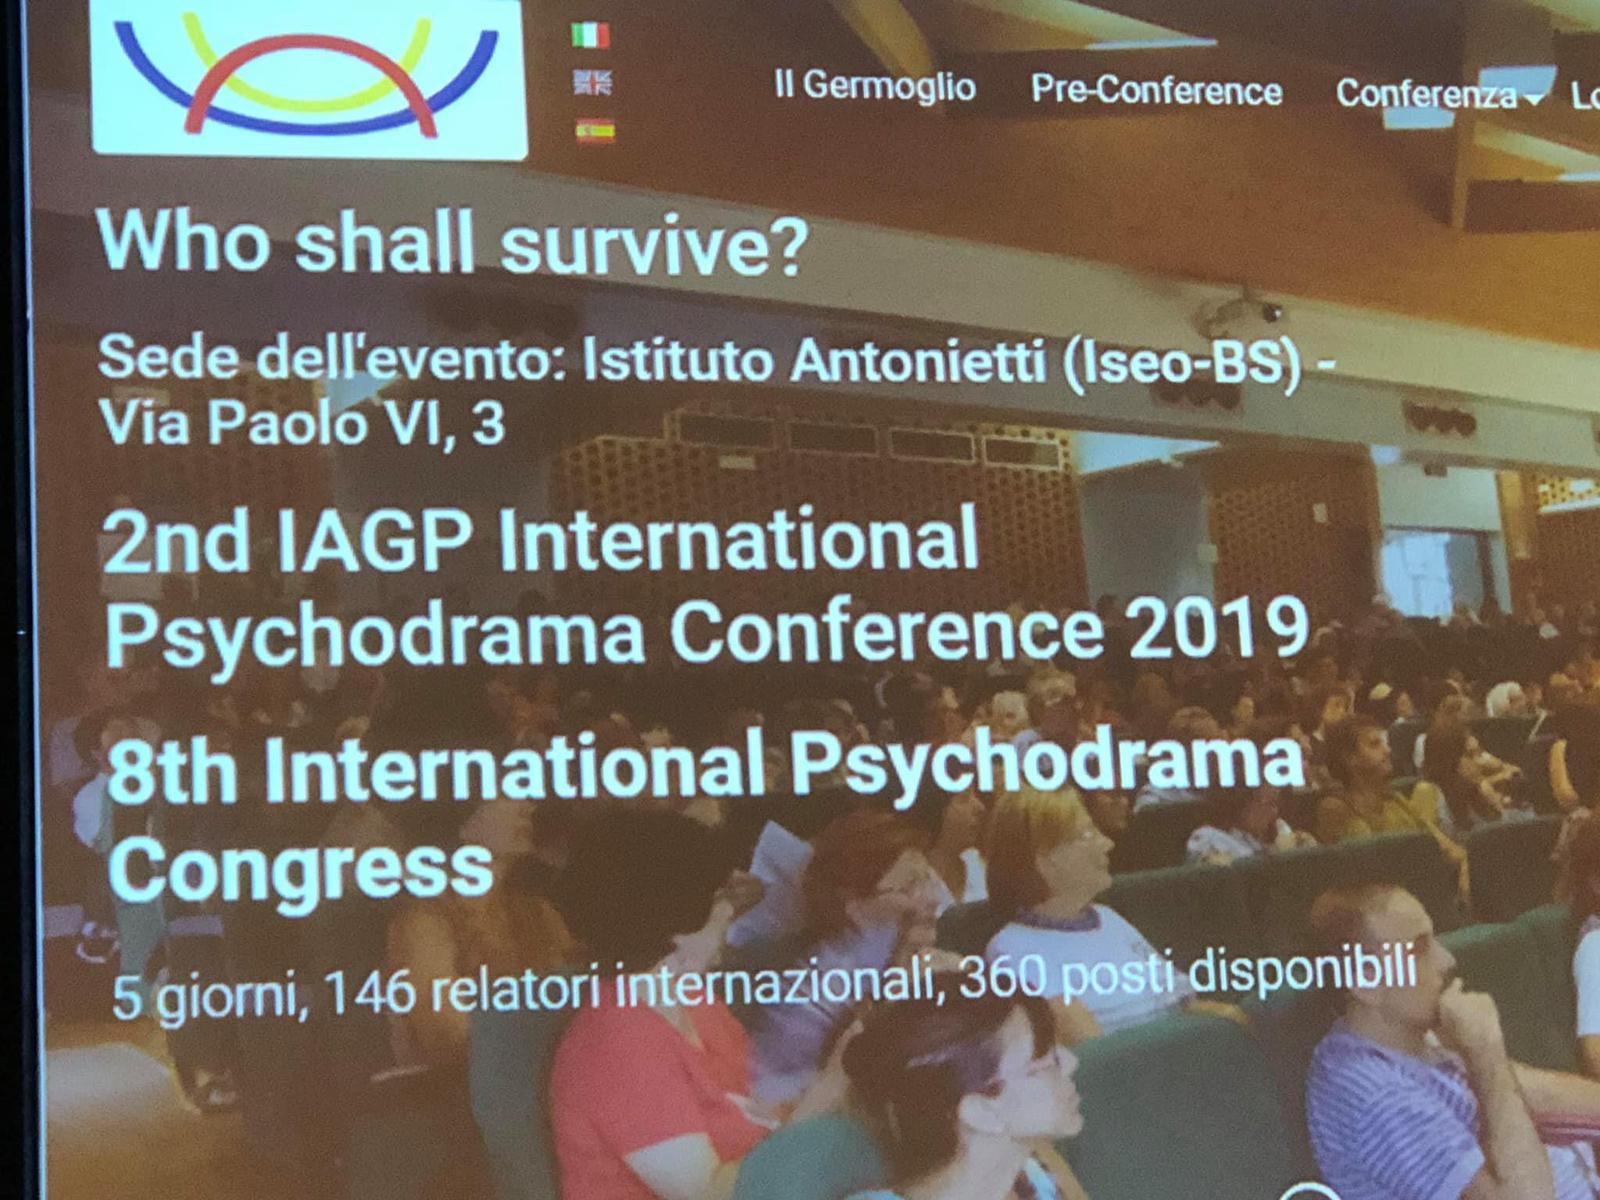 International IAGP Psychodrama Congress